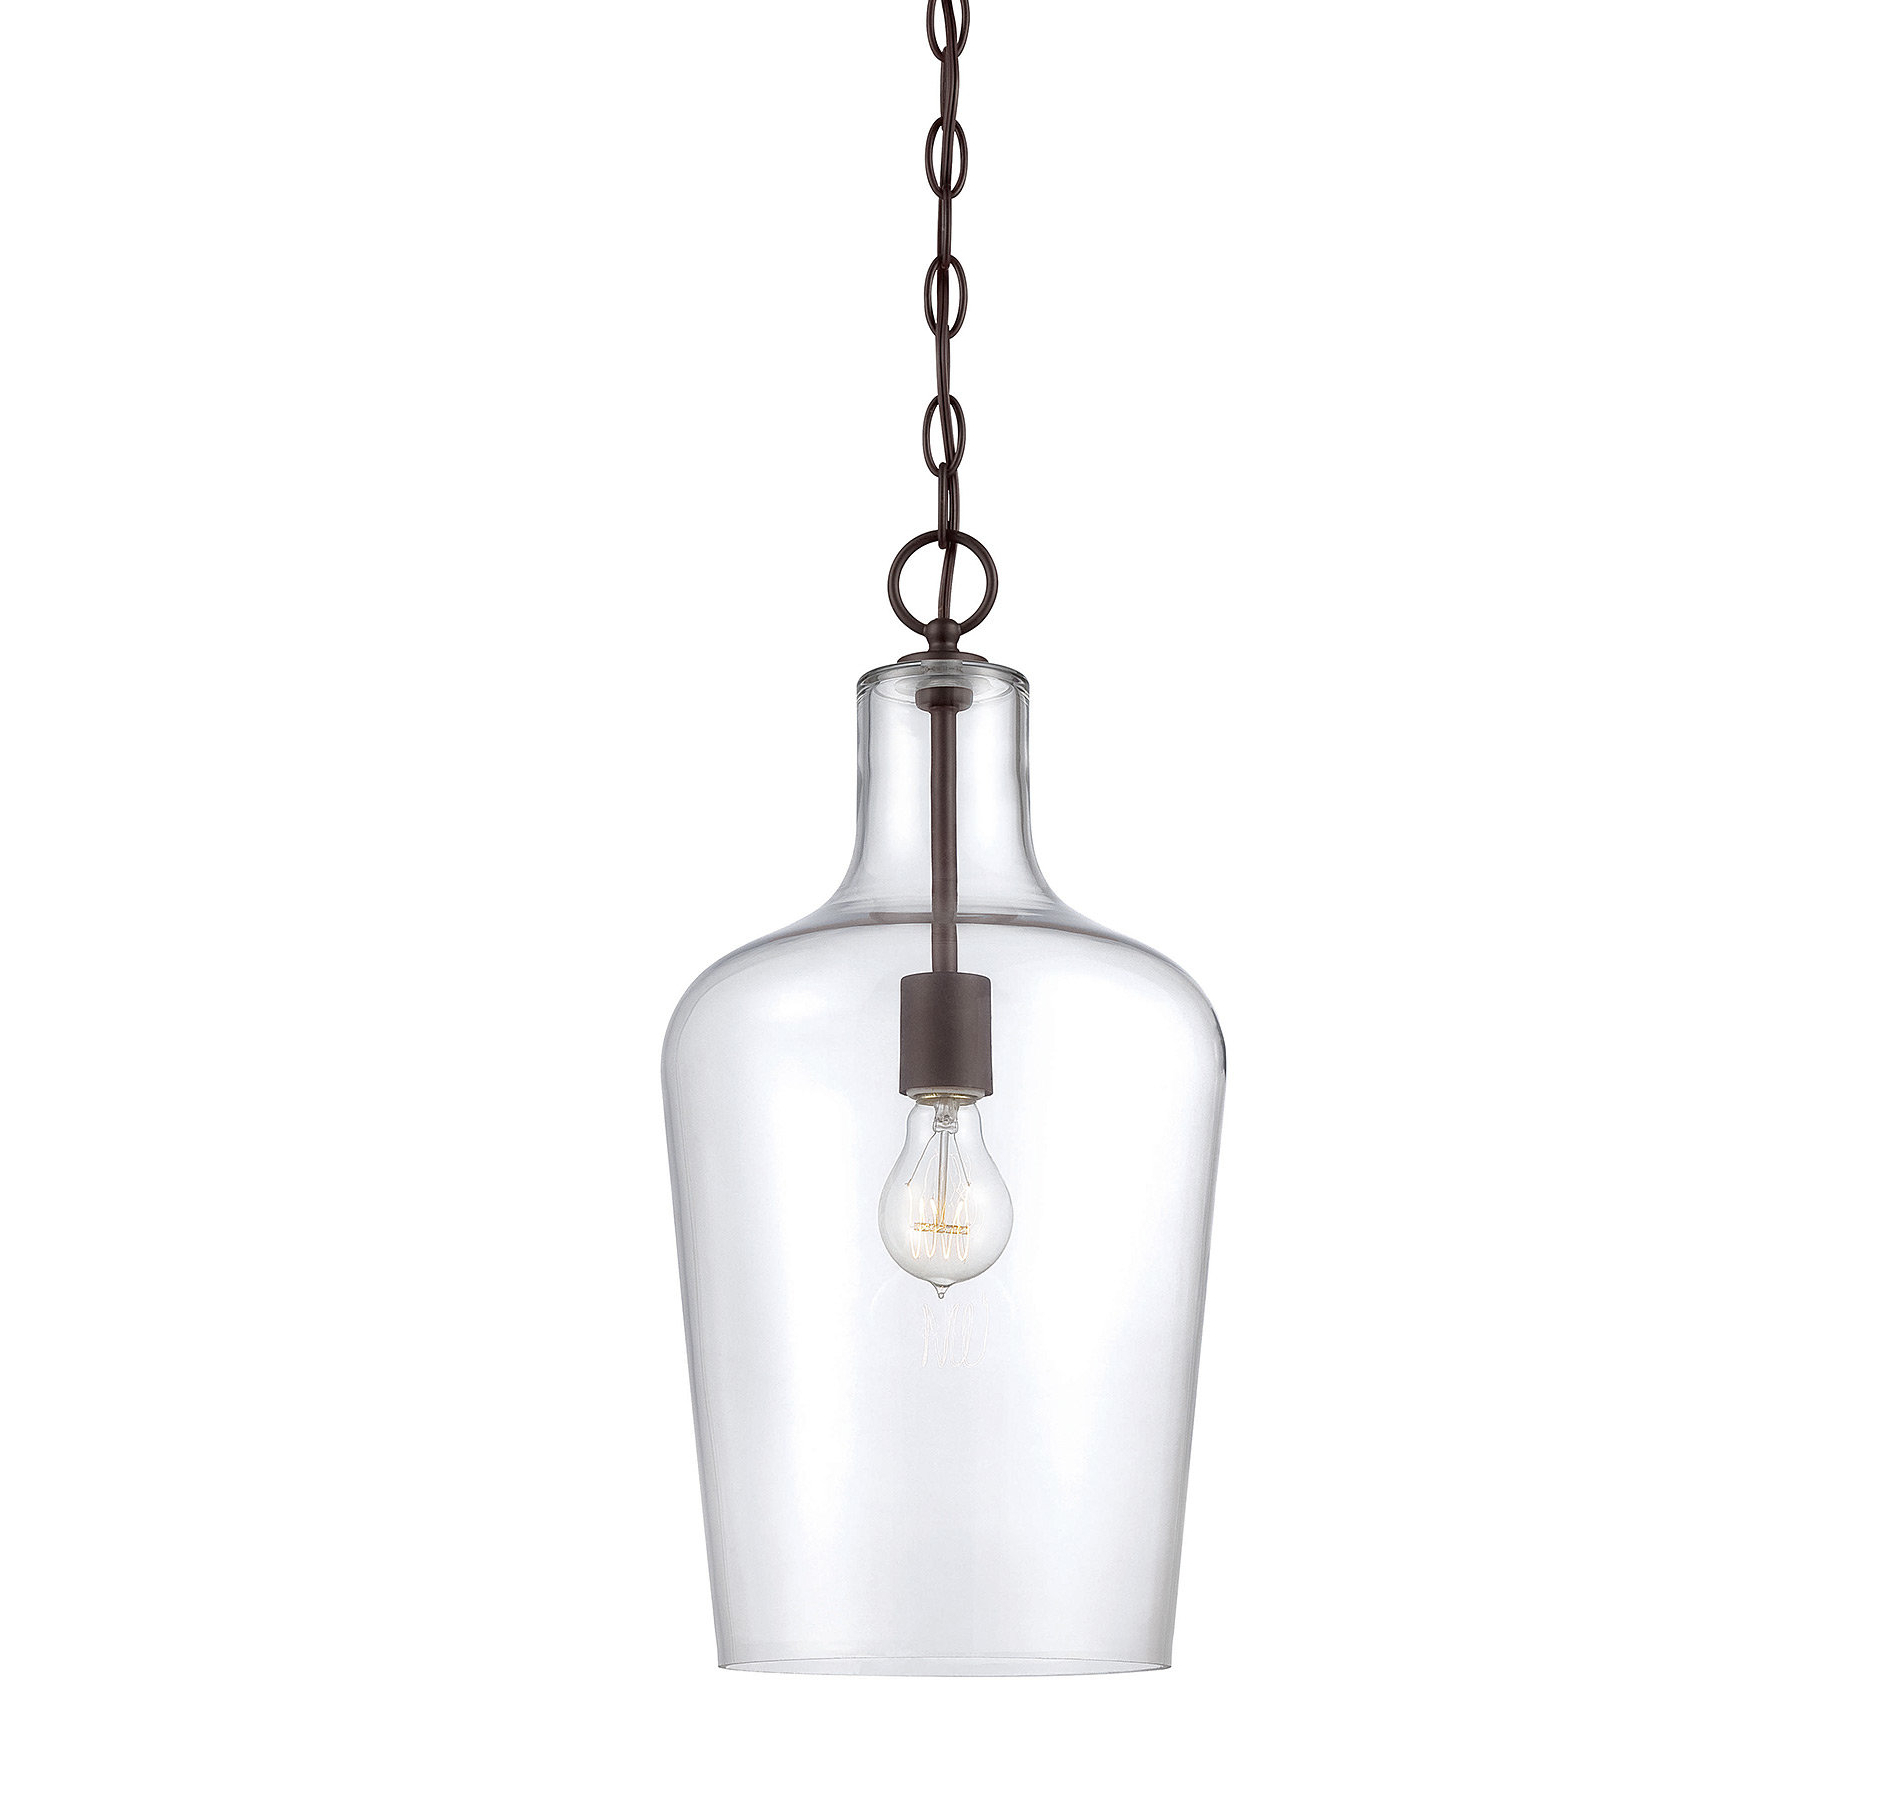 Best And Newest Carey 1 Light Single Bell Pendant Regarding Carey 1 Light Single Bell Pendants (Gallery 3 of 20)